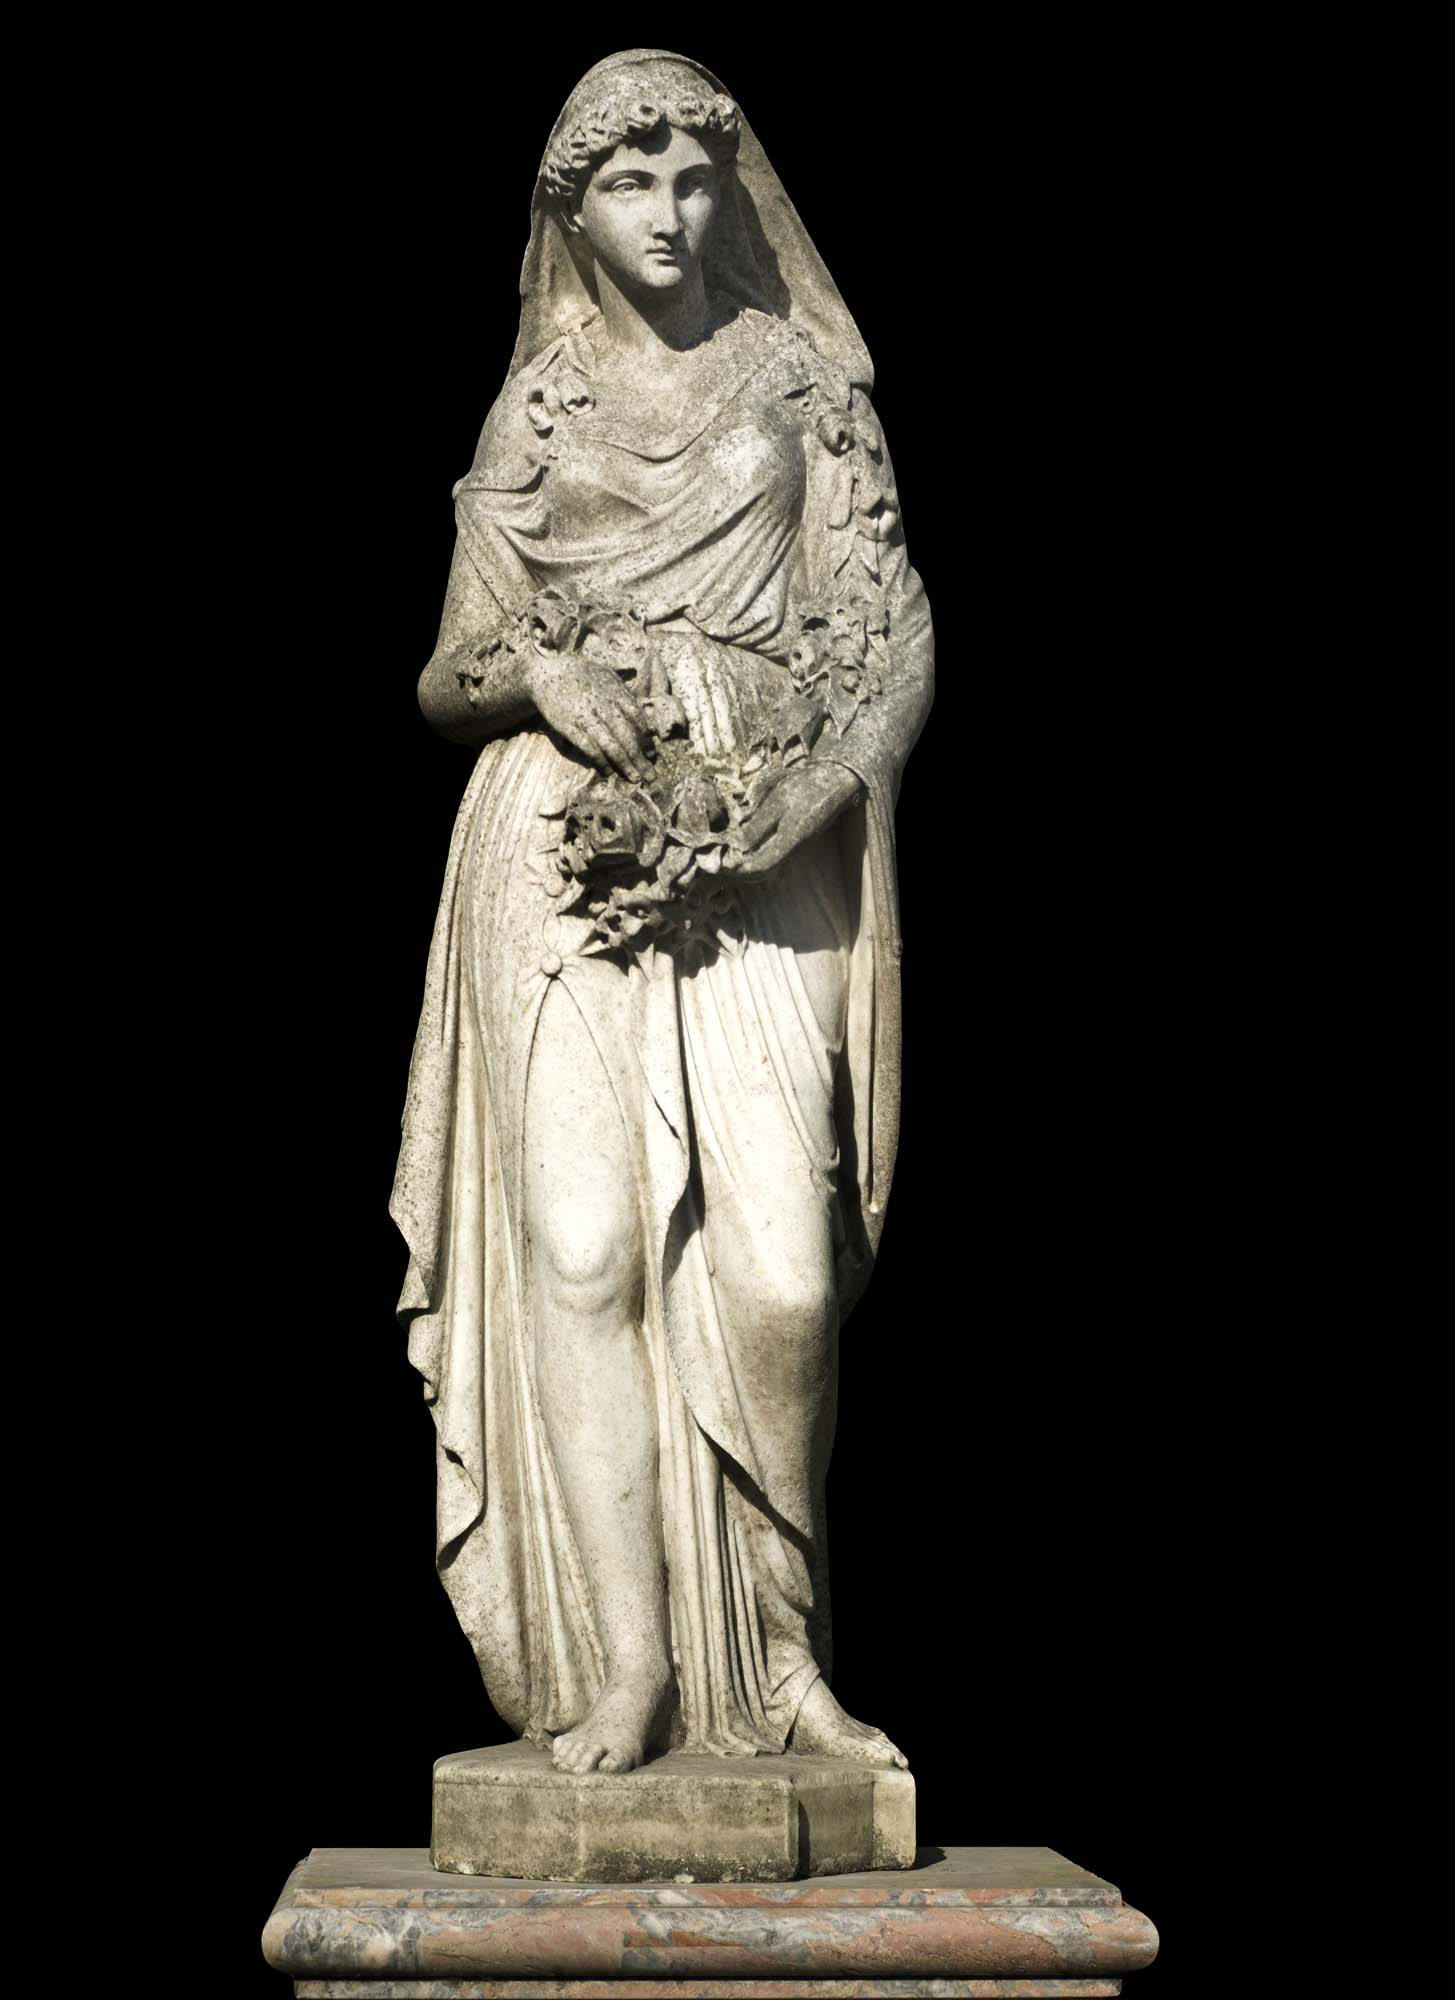 A very fine antique Carrara Marble statue of the Goddess Eiar, one of The Four Seasons